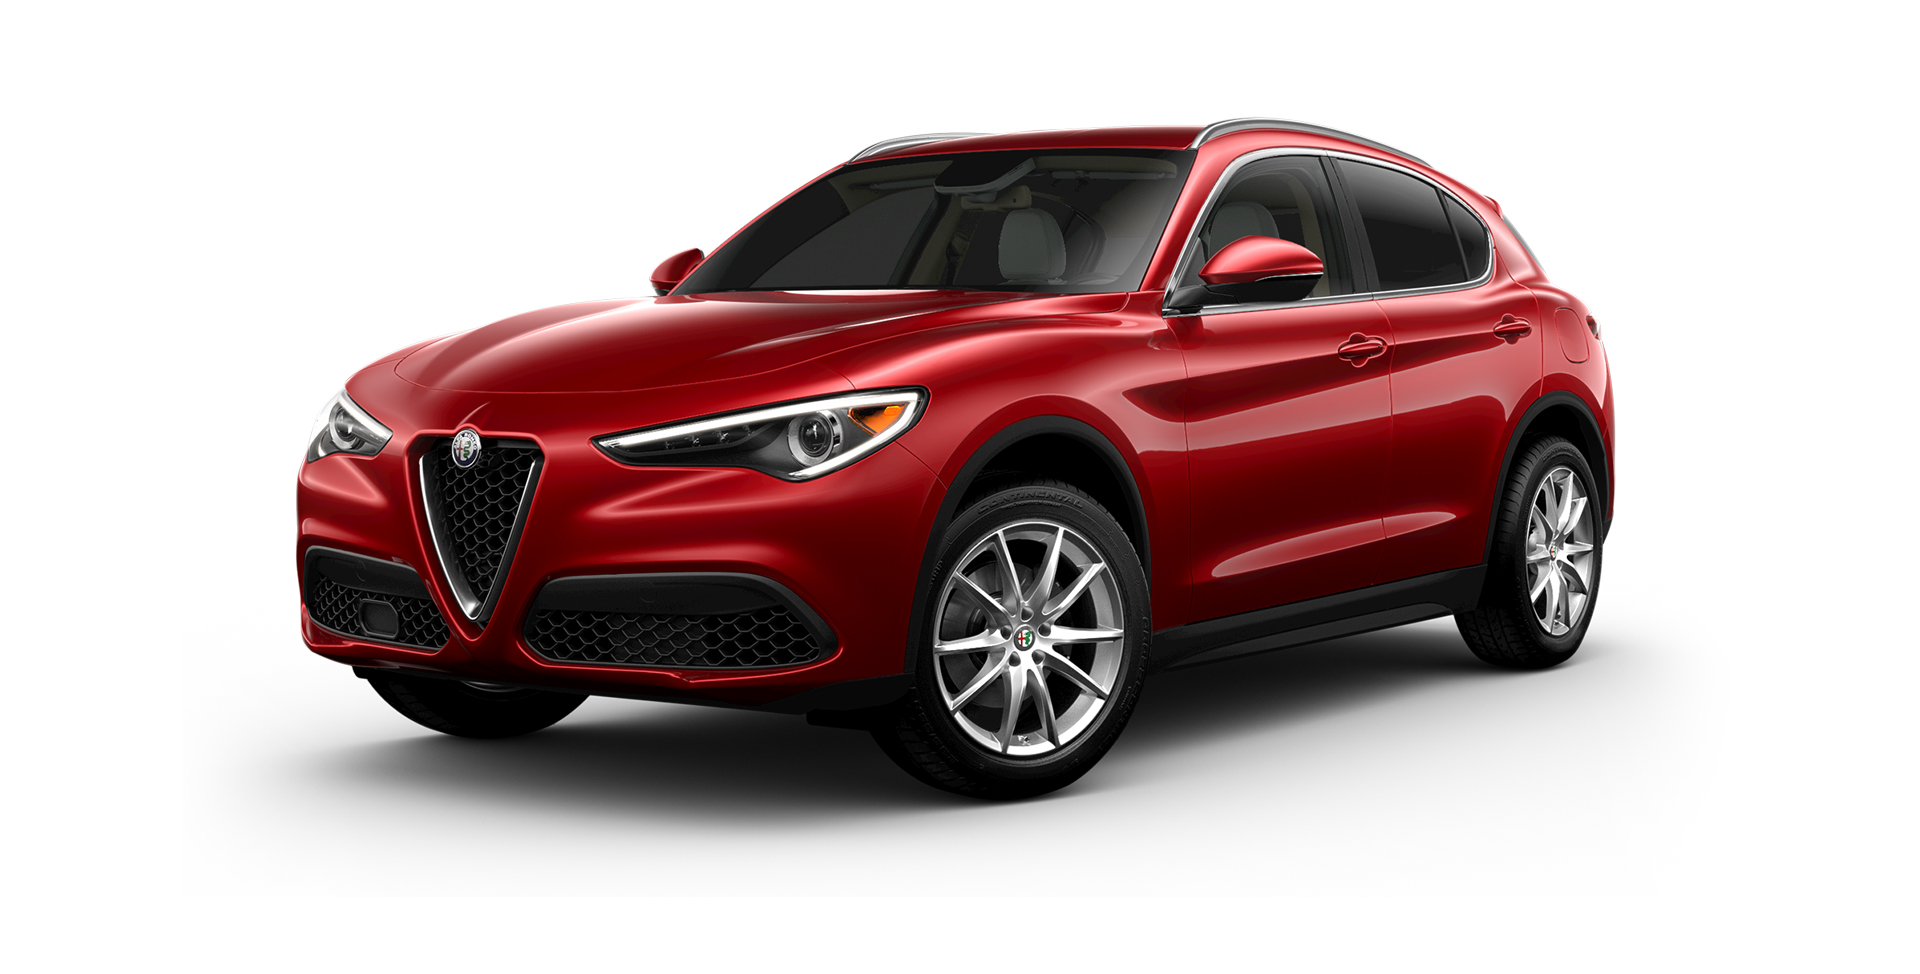 Alfa Romeo Stelvio Car Dealership in Miami, FL - The Collection